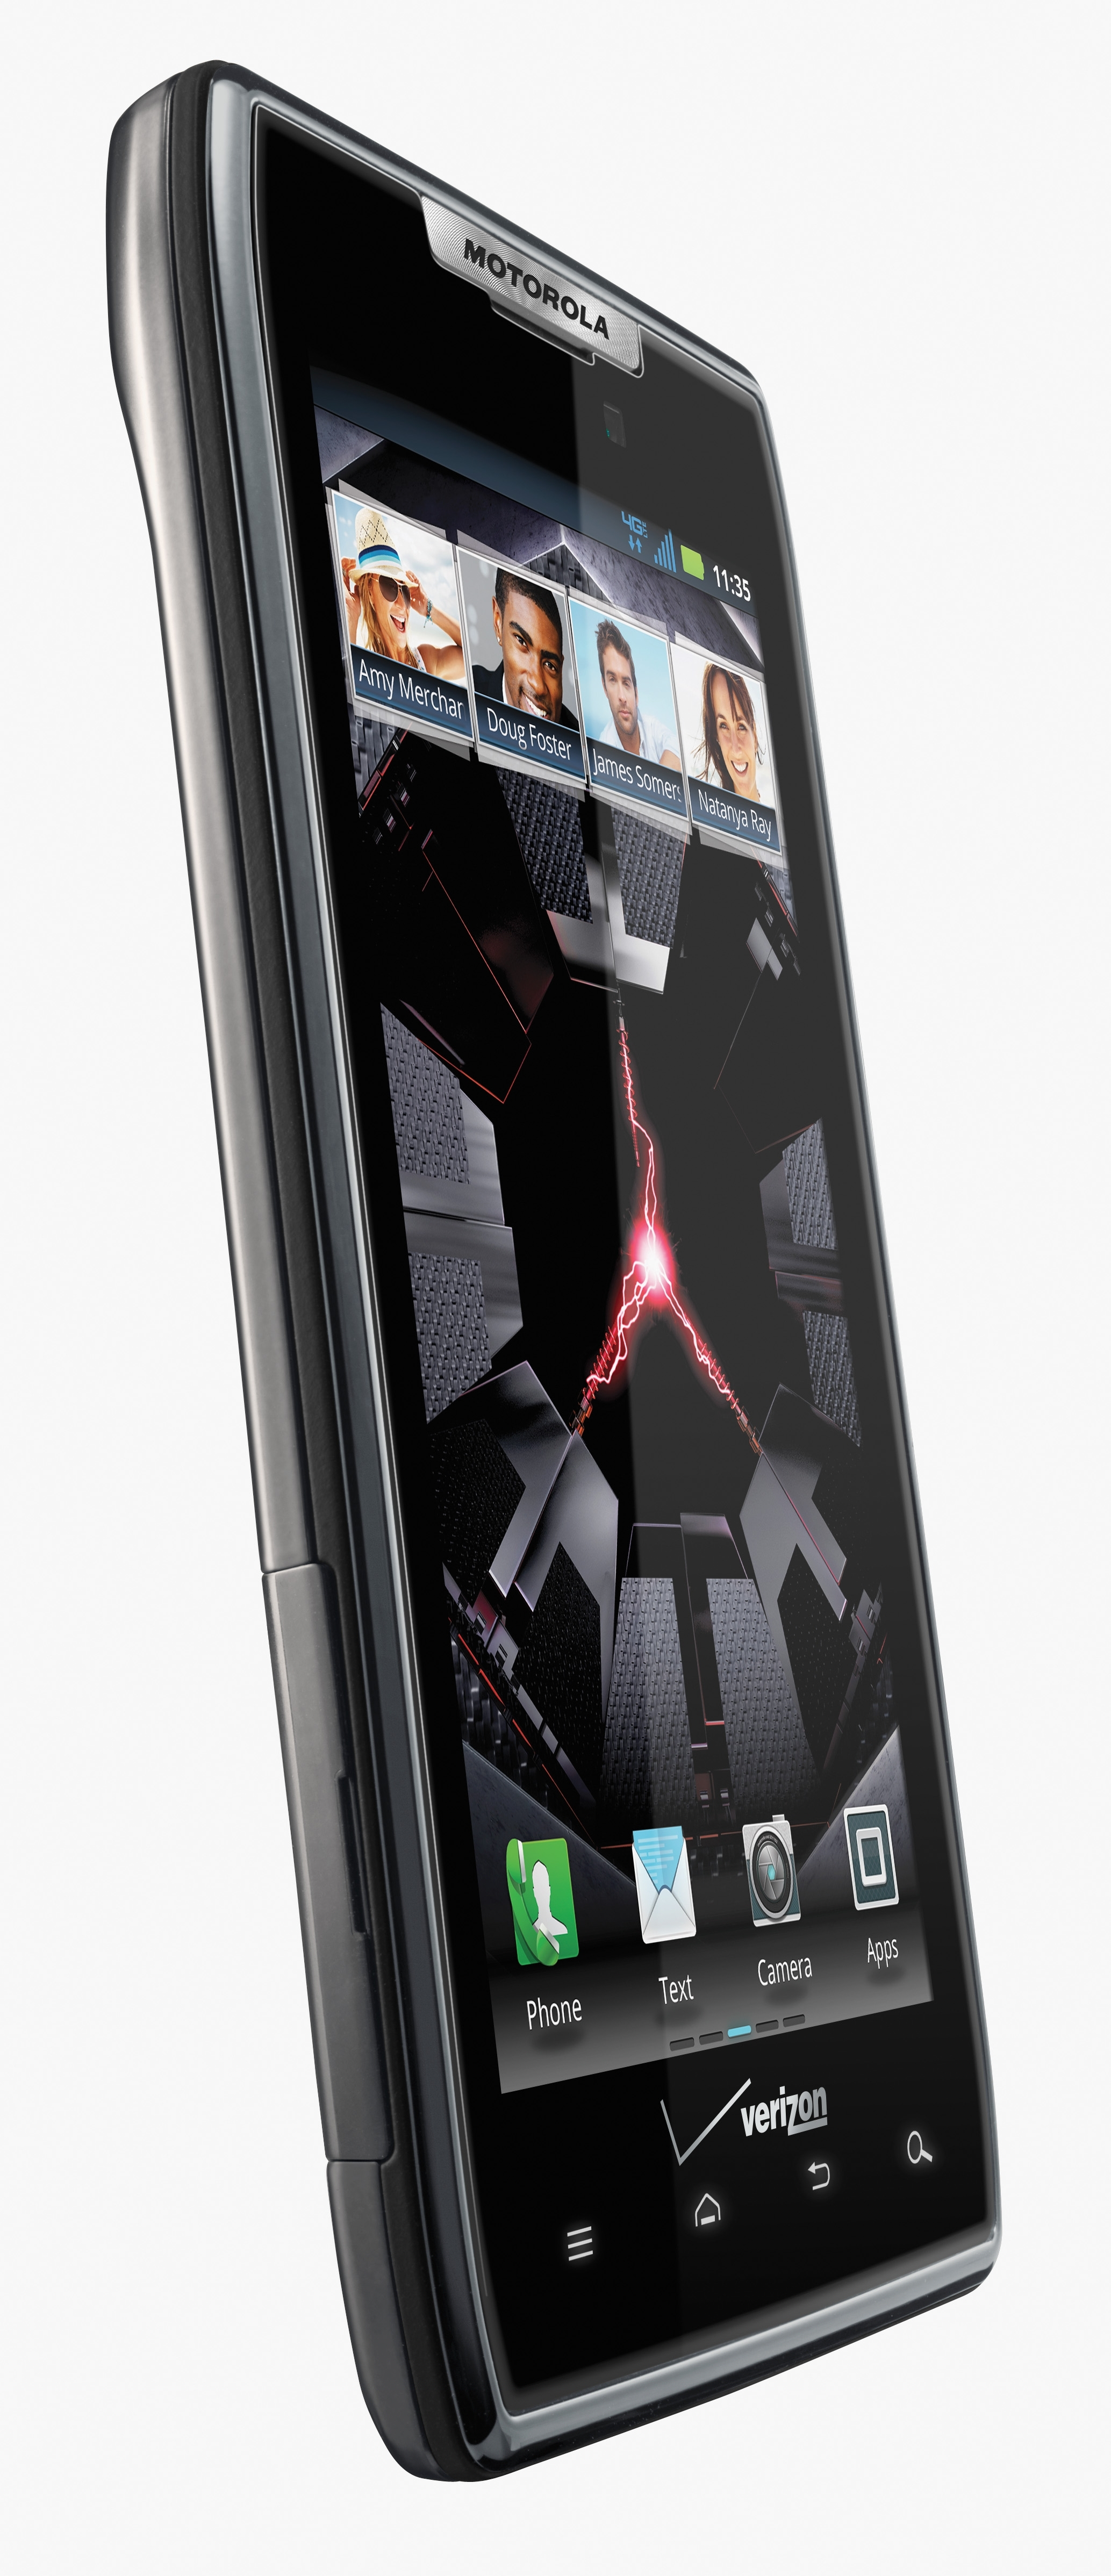 The Droid Razr is only 7.1mm thick